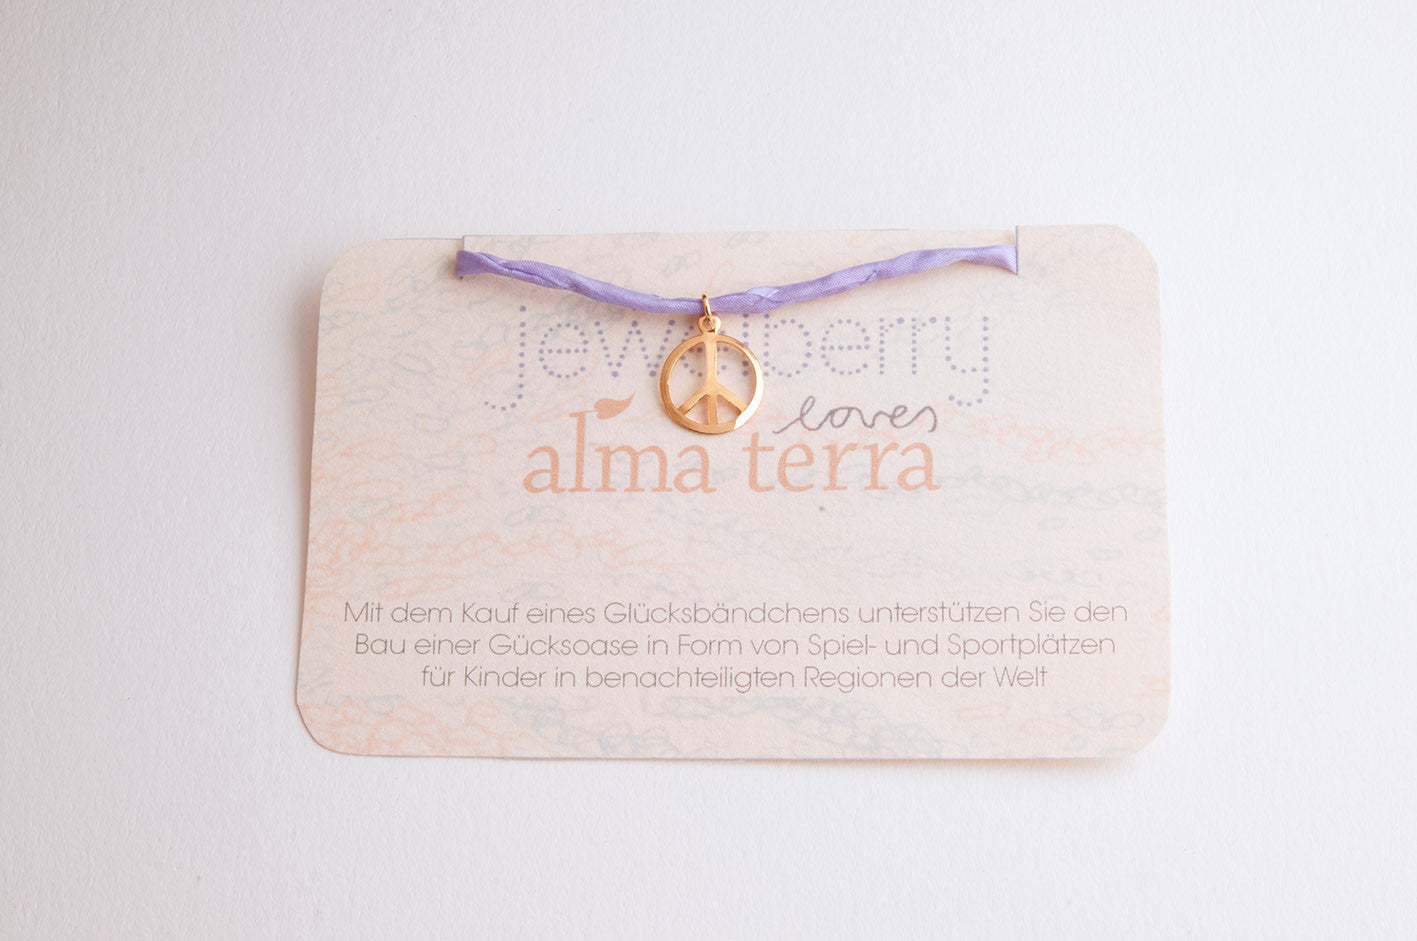 Charity Armband Jewelberry for Almaterra PEACE vergoldet